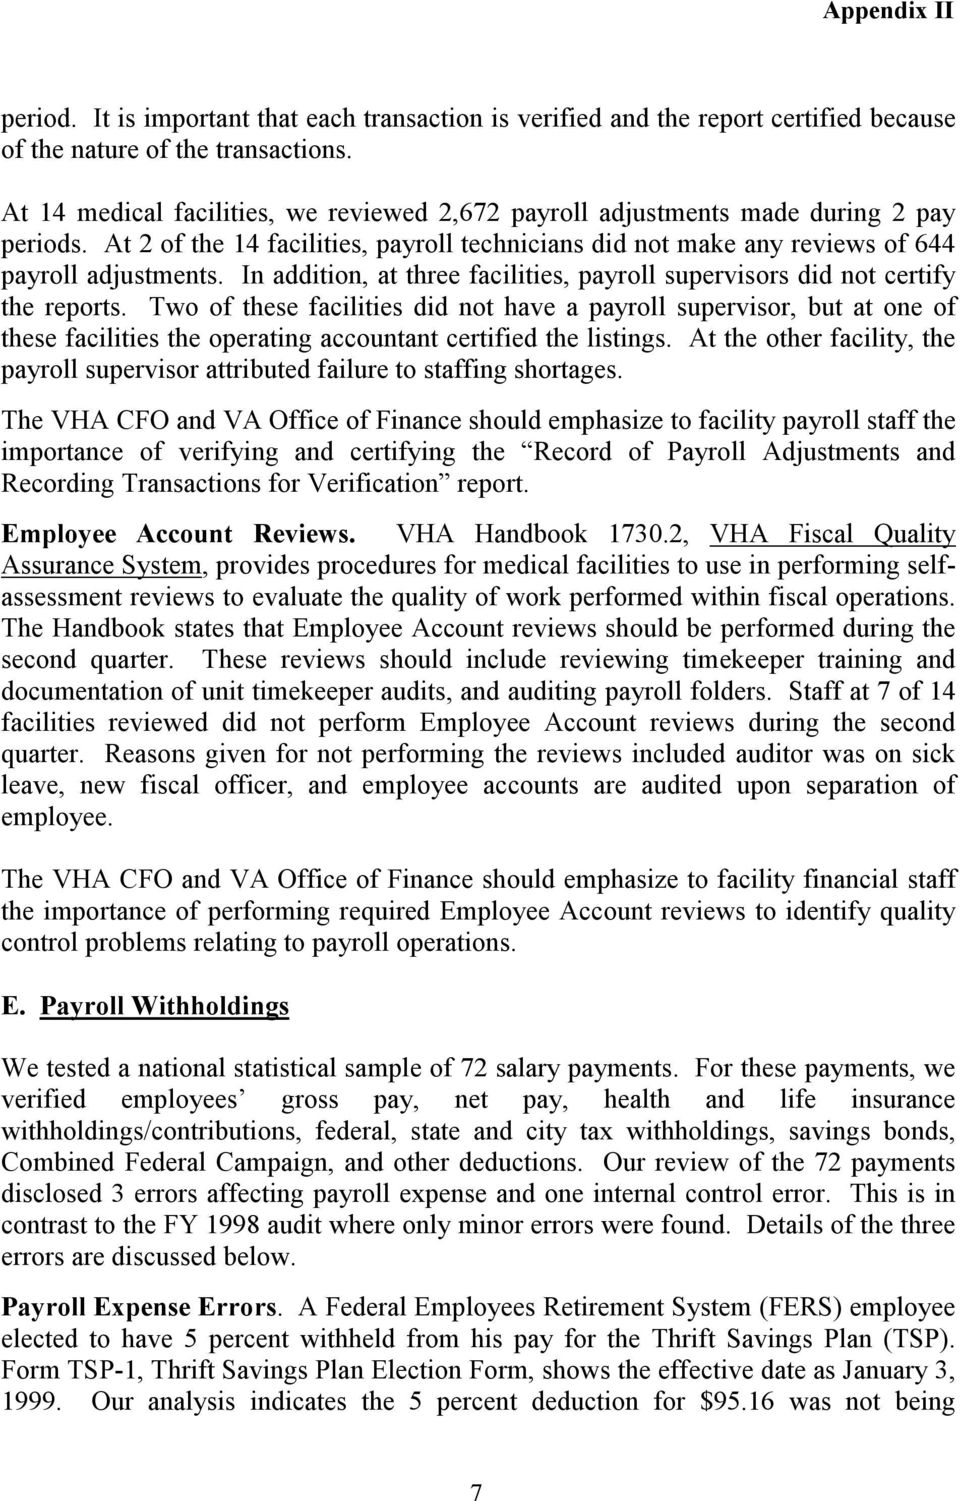 In addition, at three facilities, payroll supervisors did not certify the reports.